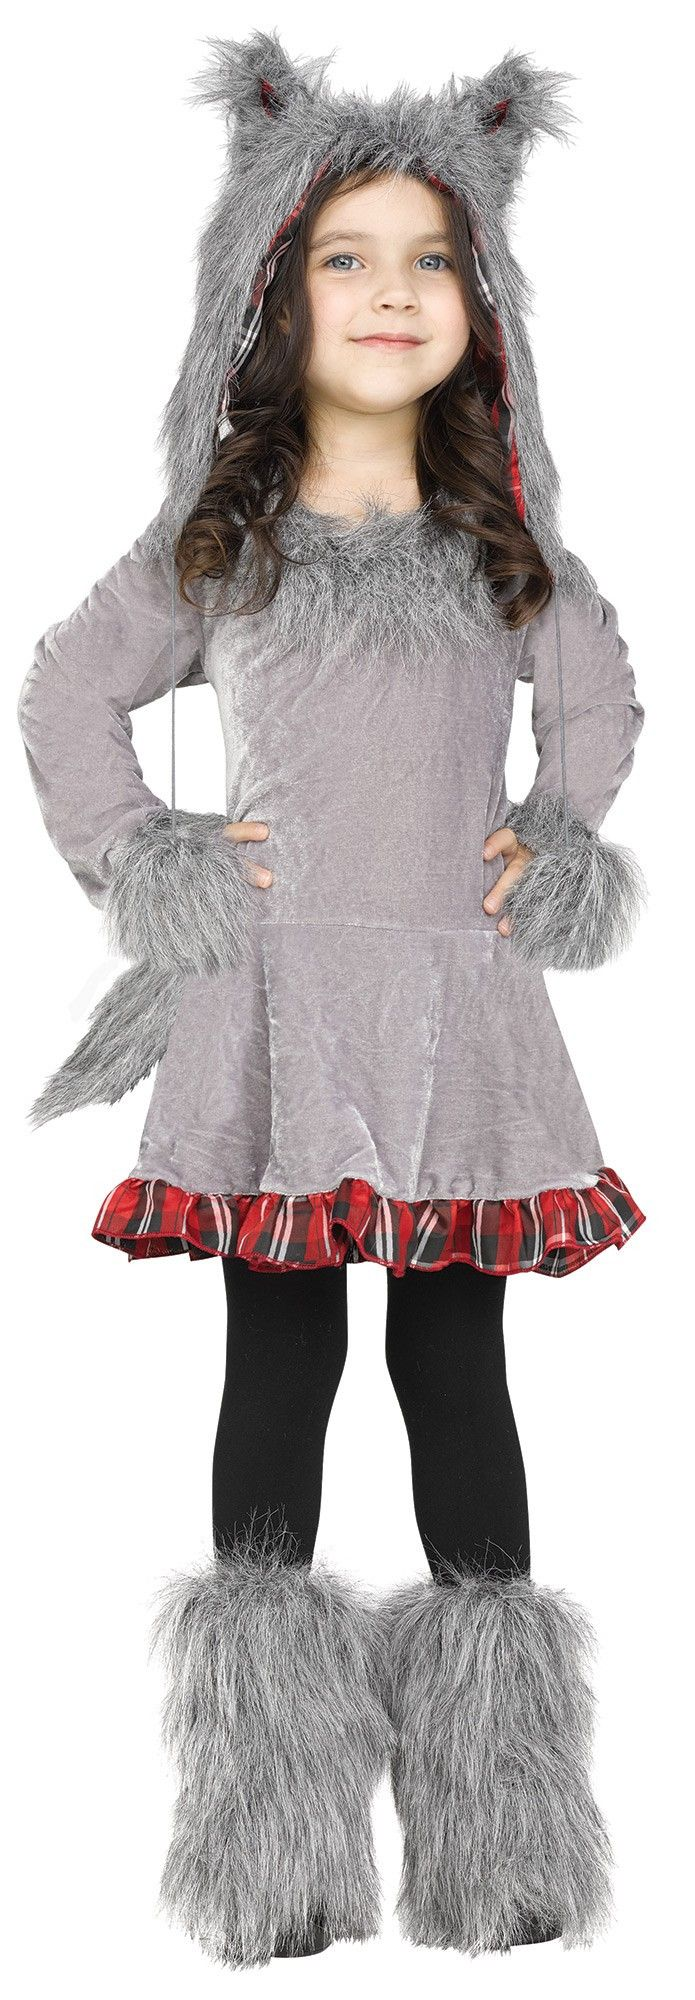 Description #125121 Includes: - Dress - Tail - Hood - Boot Tops - Toddler Size Sizes: 3-4T, 4-6